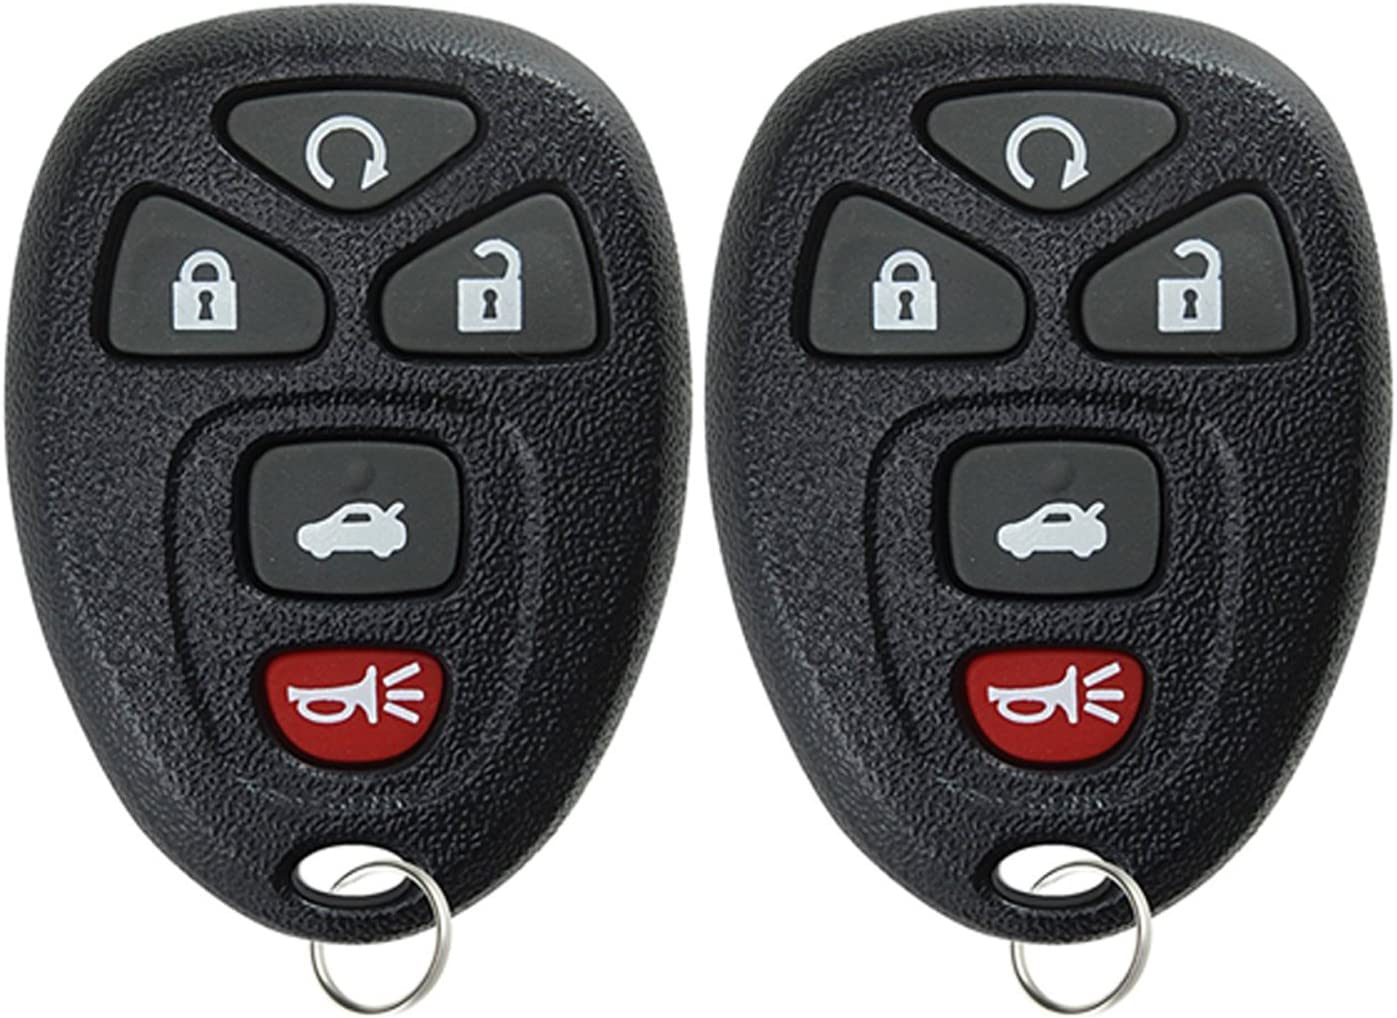 KeylessOption Keyless Entry Remote Start Control Car Key Fob Replacement for 22733524 Pack of 2